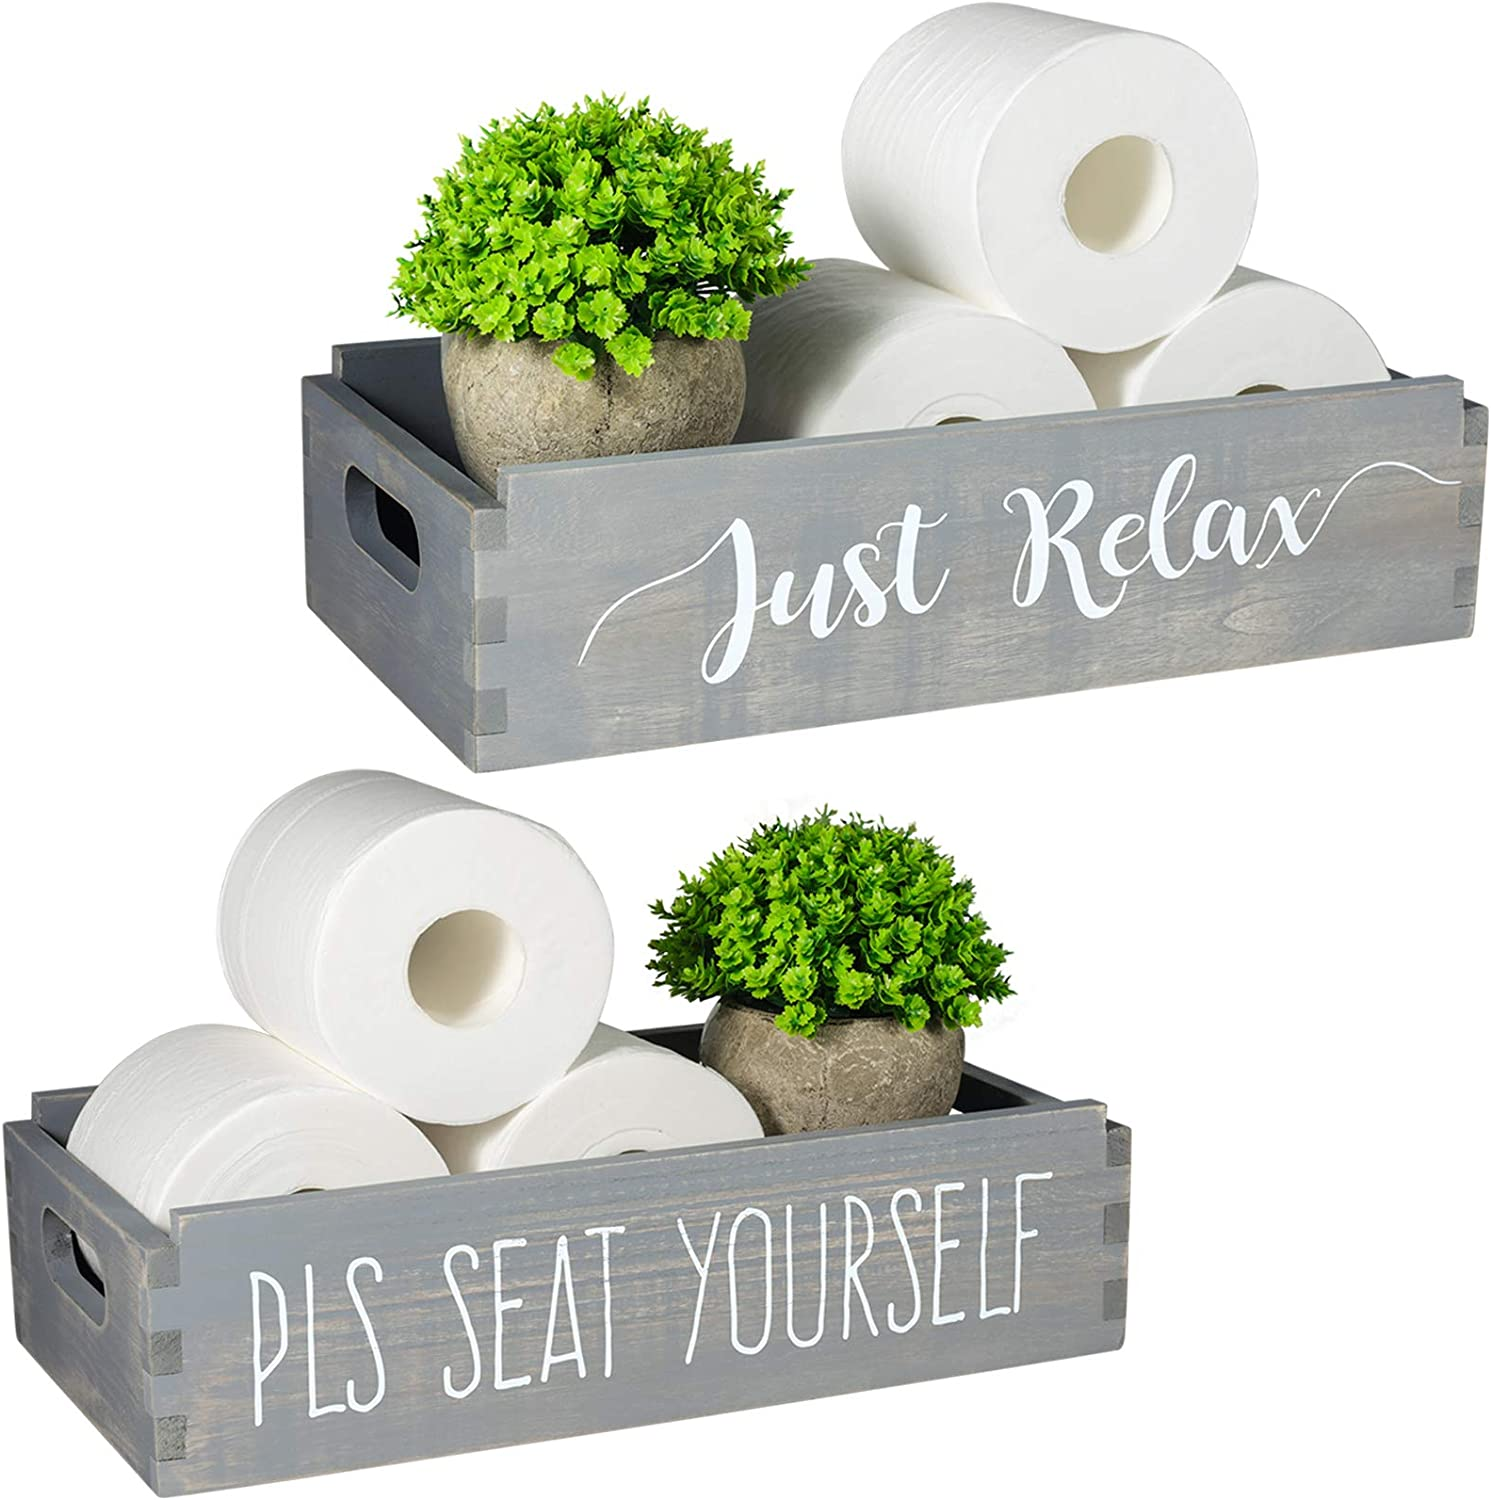 TJ.MOREE Please Seat Yourself/Just Relax Bathroom Decor Box Home Decor Mason Jars and Artificial Flower Box Farmhouse New Home Housewarming Gift Powder Room Decor Rustic Home Decor